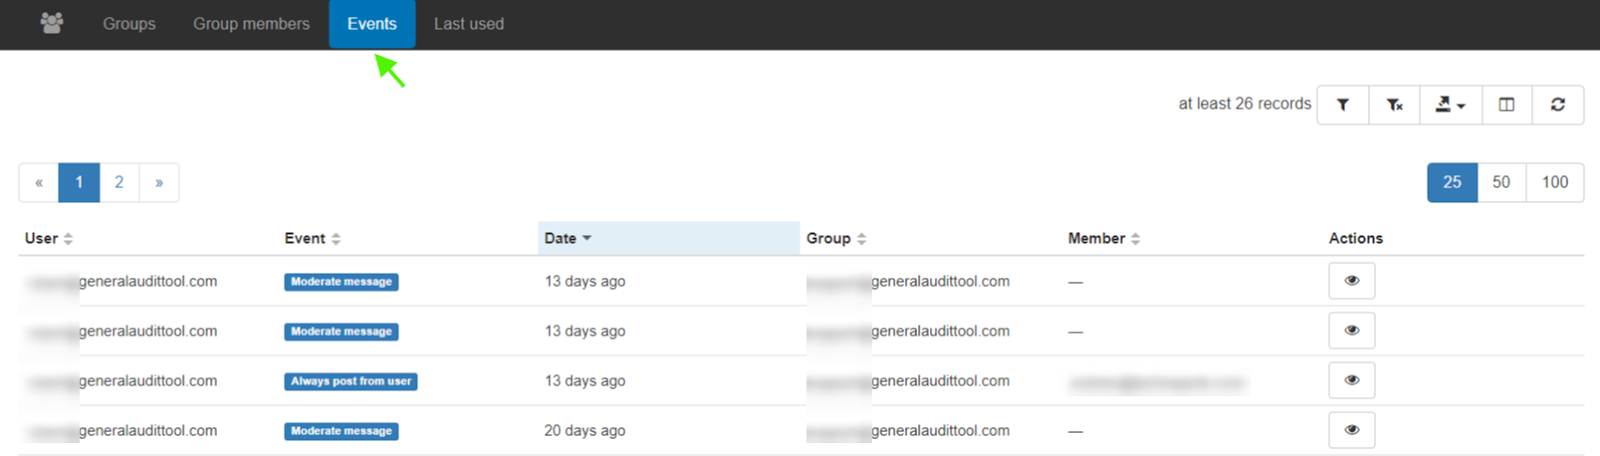 Events tab will display actions occurred to a group like by which user to what group and the event happened.